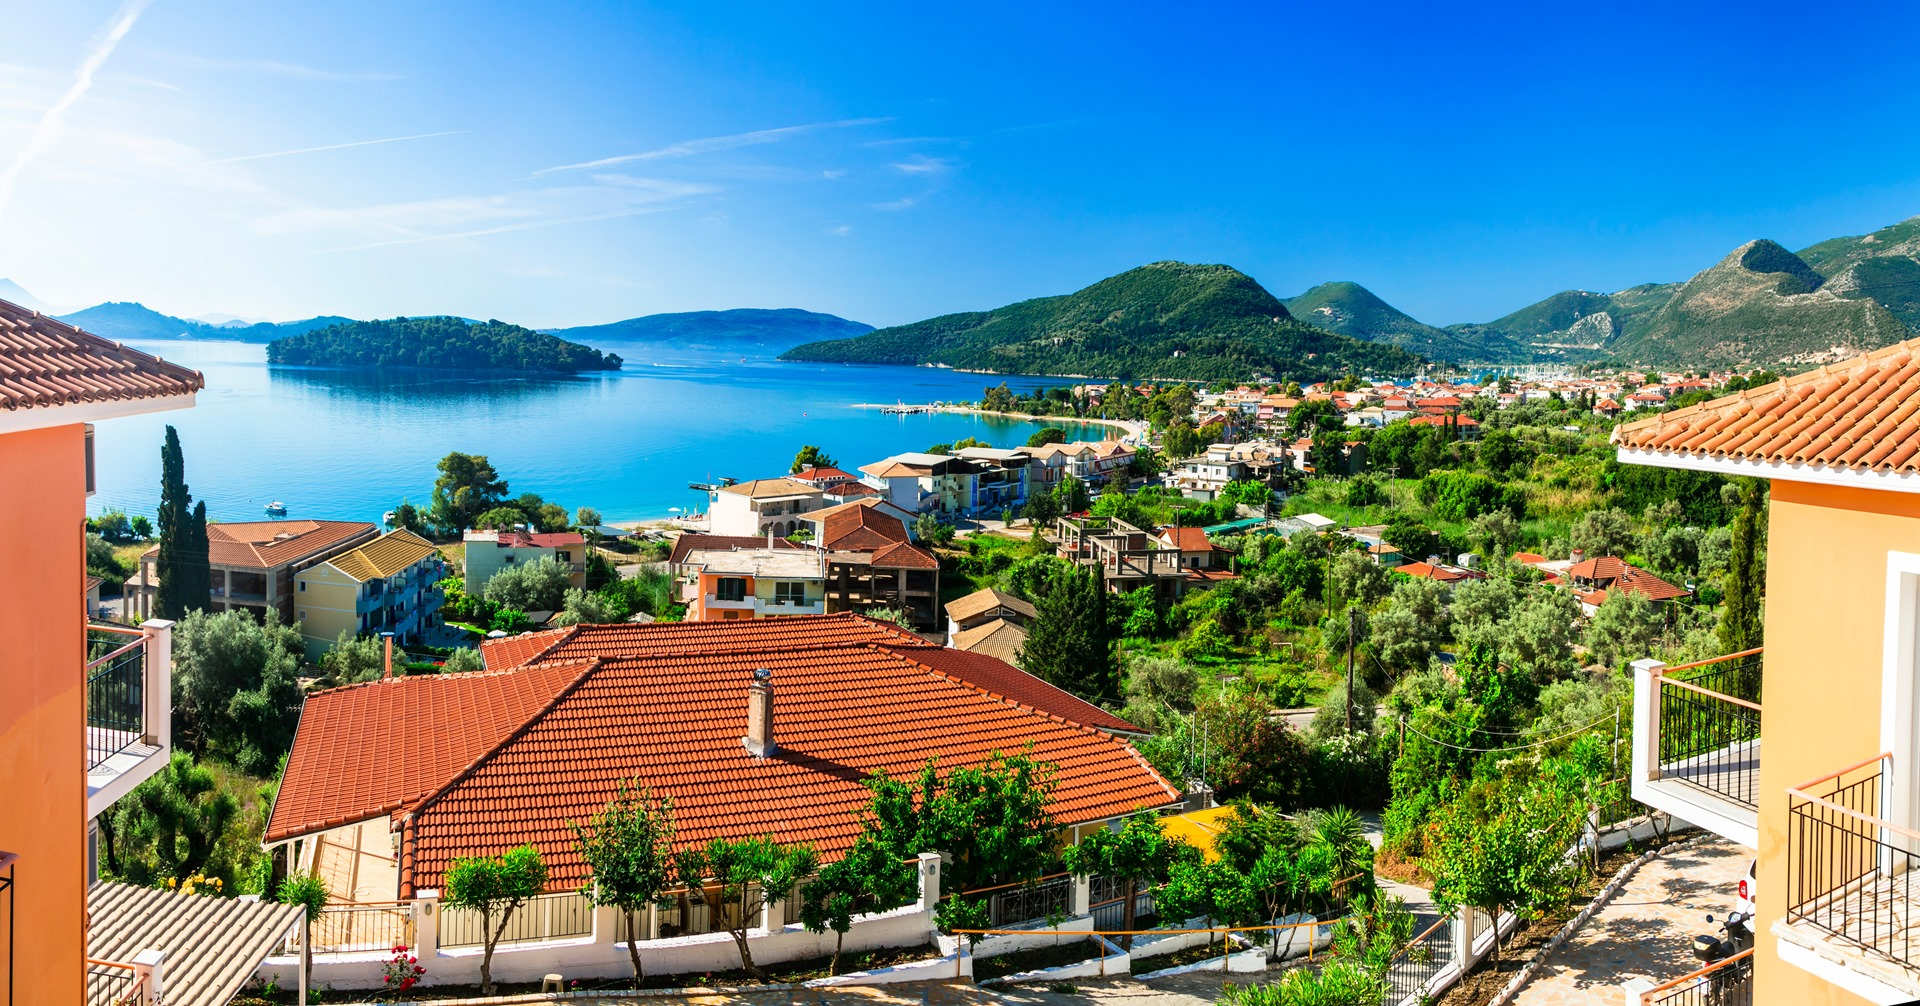 Food to try in Lefkada